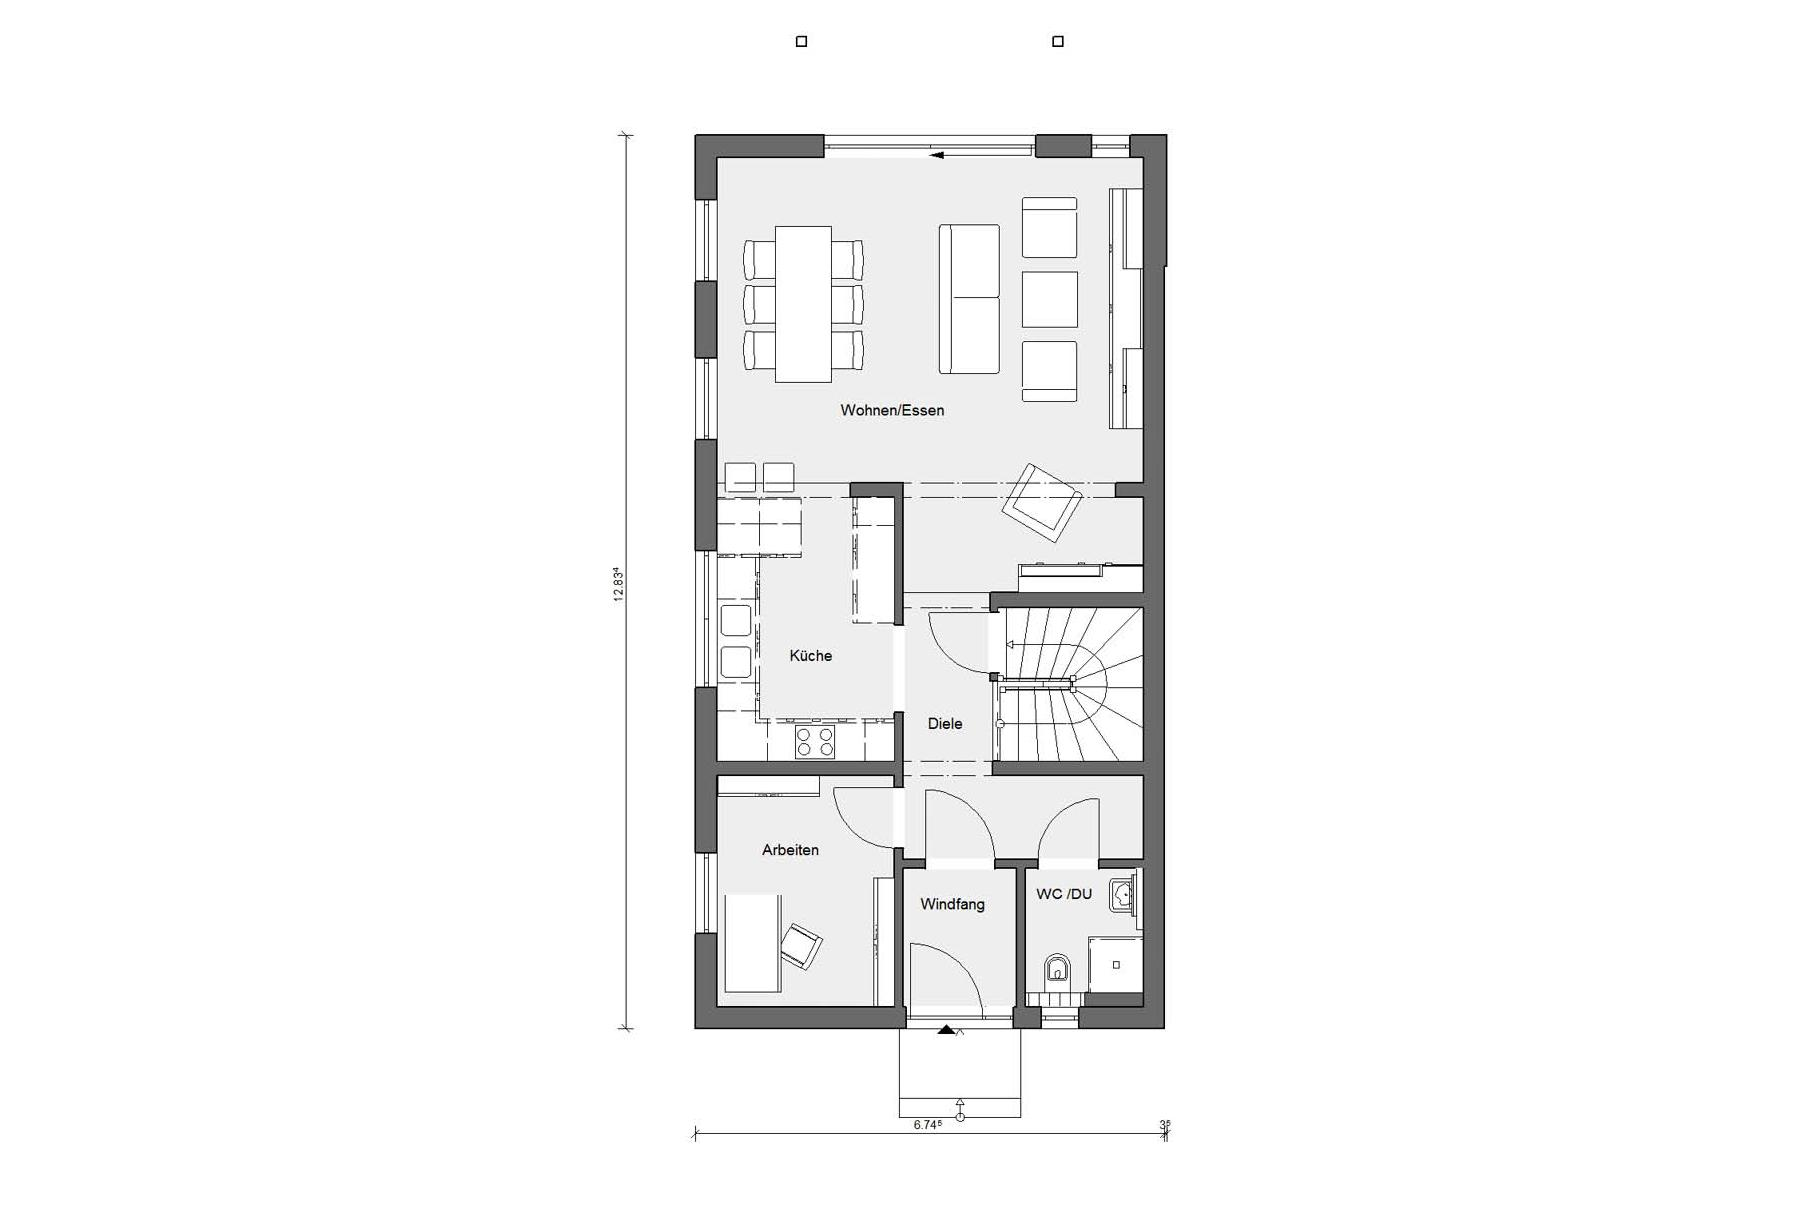 Floor plan ground floor D 15-216.1 terraced house